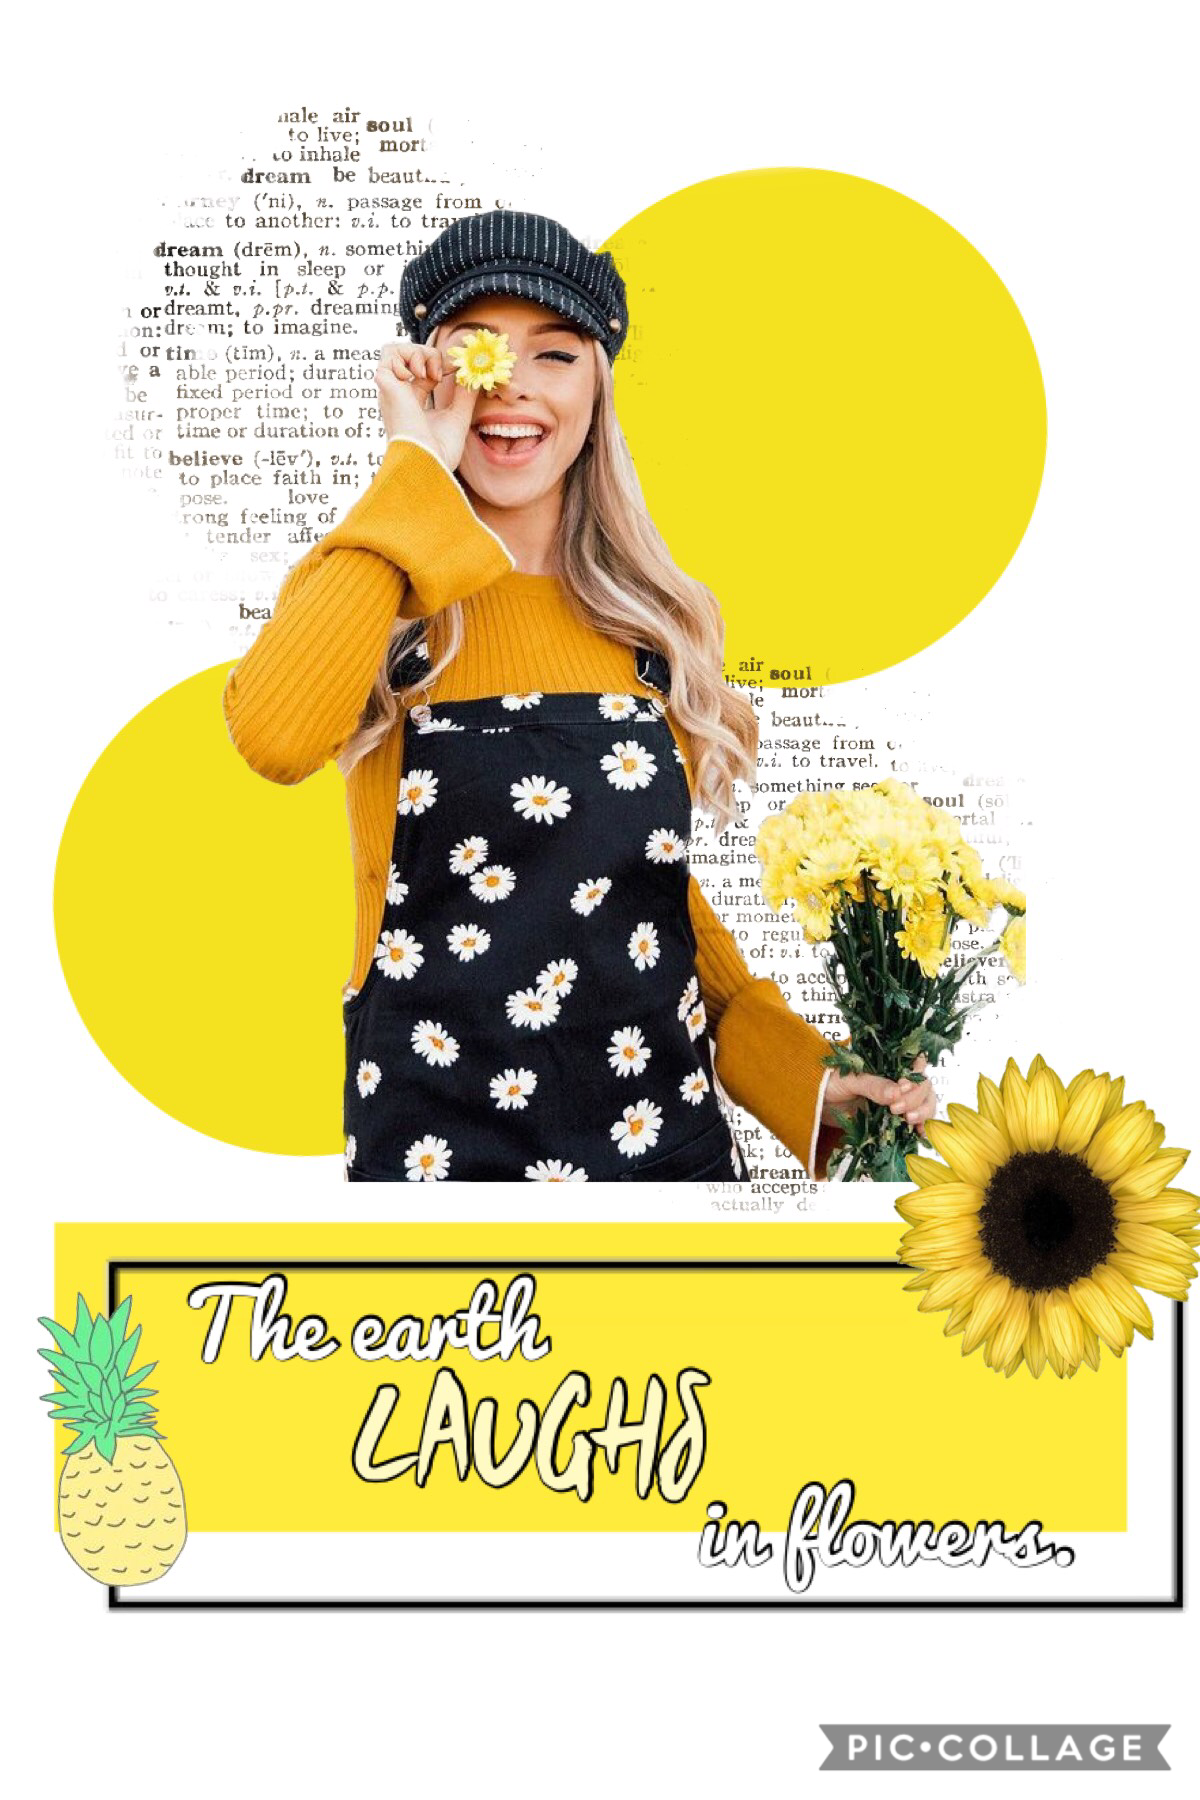 Tap! 💐 🌼 New style but only for 4-5 collages, then I will go back to my old style. Thankyou to @Becstar713 and many others for the inspiration! 💕🤙